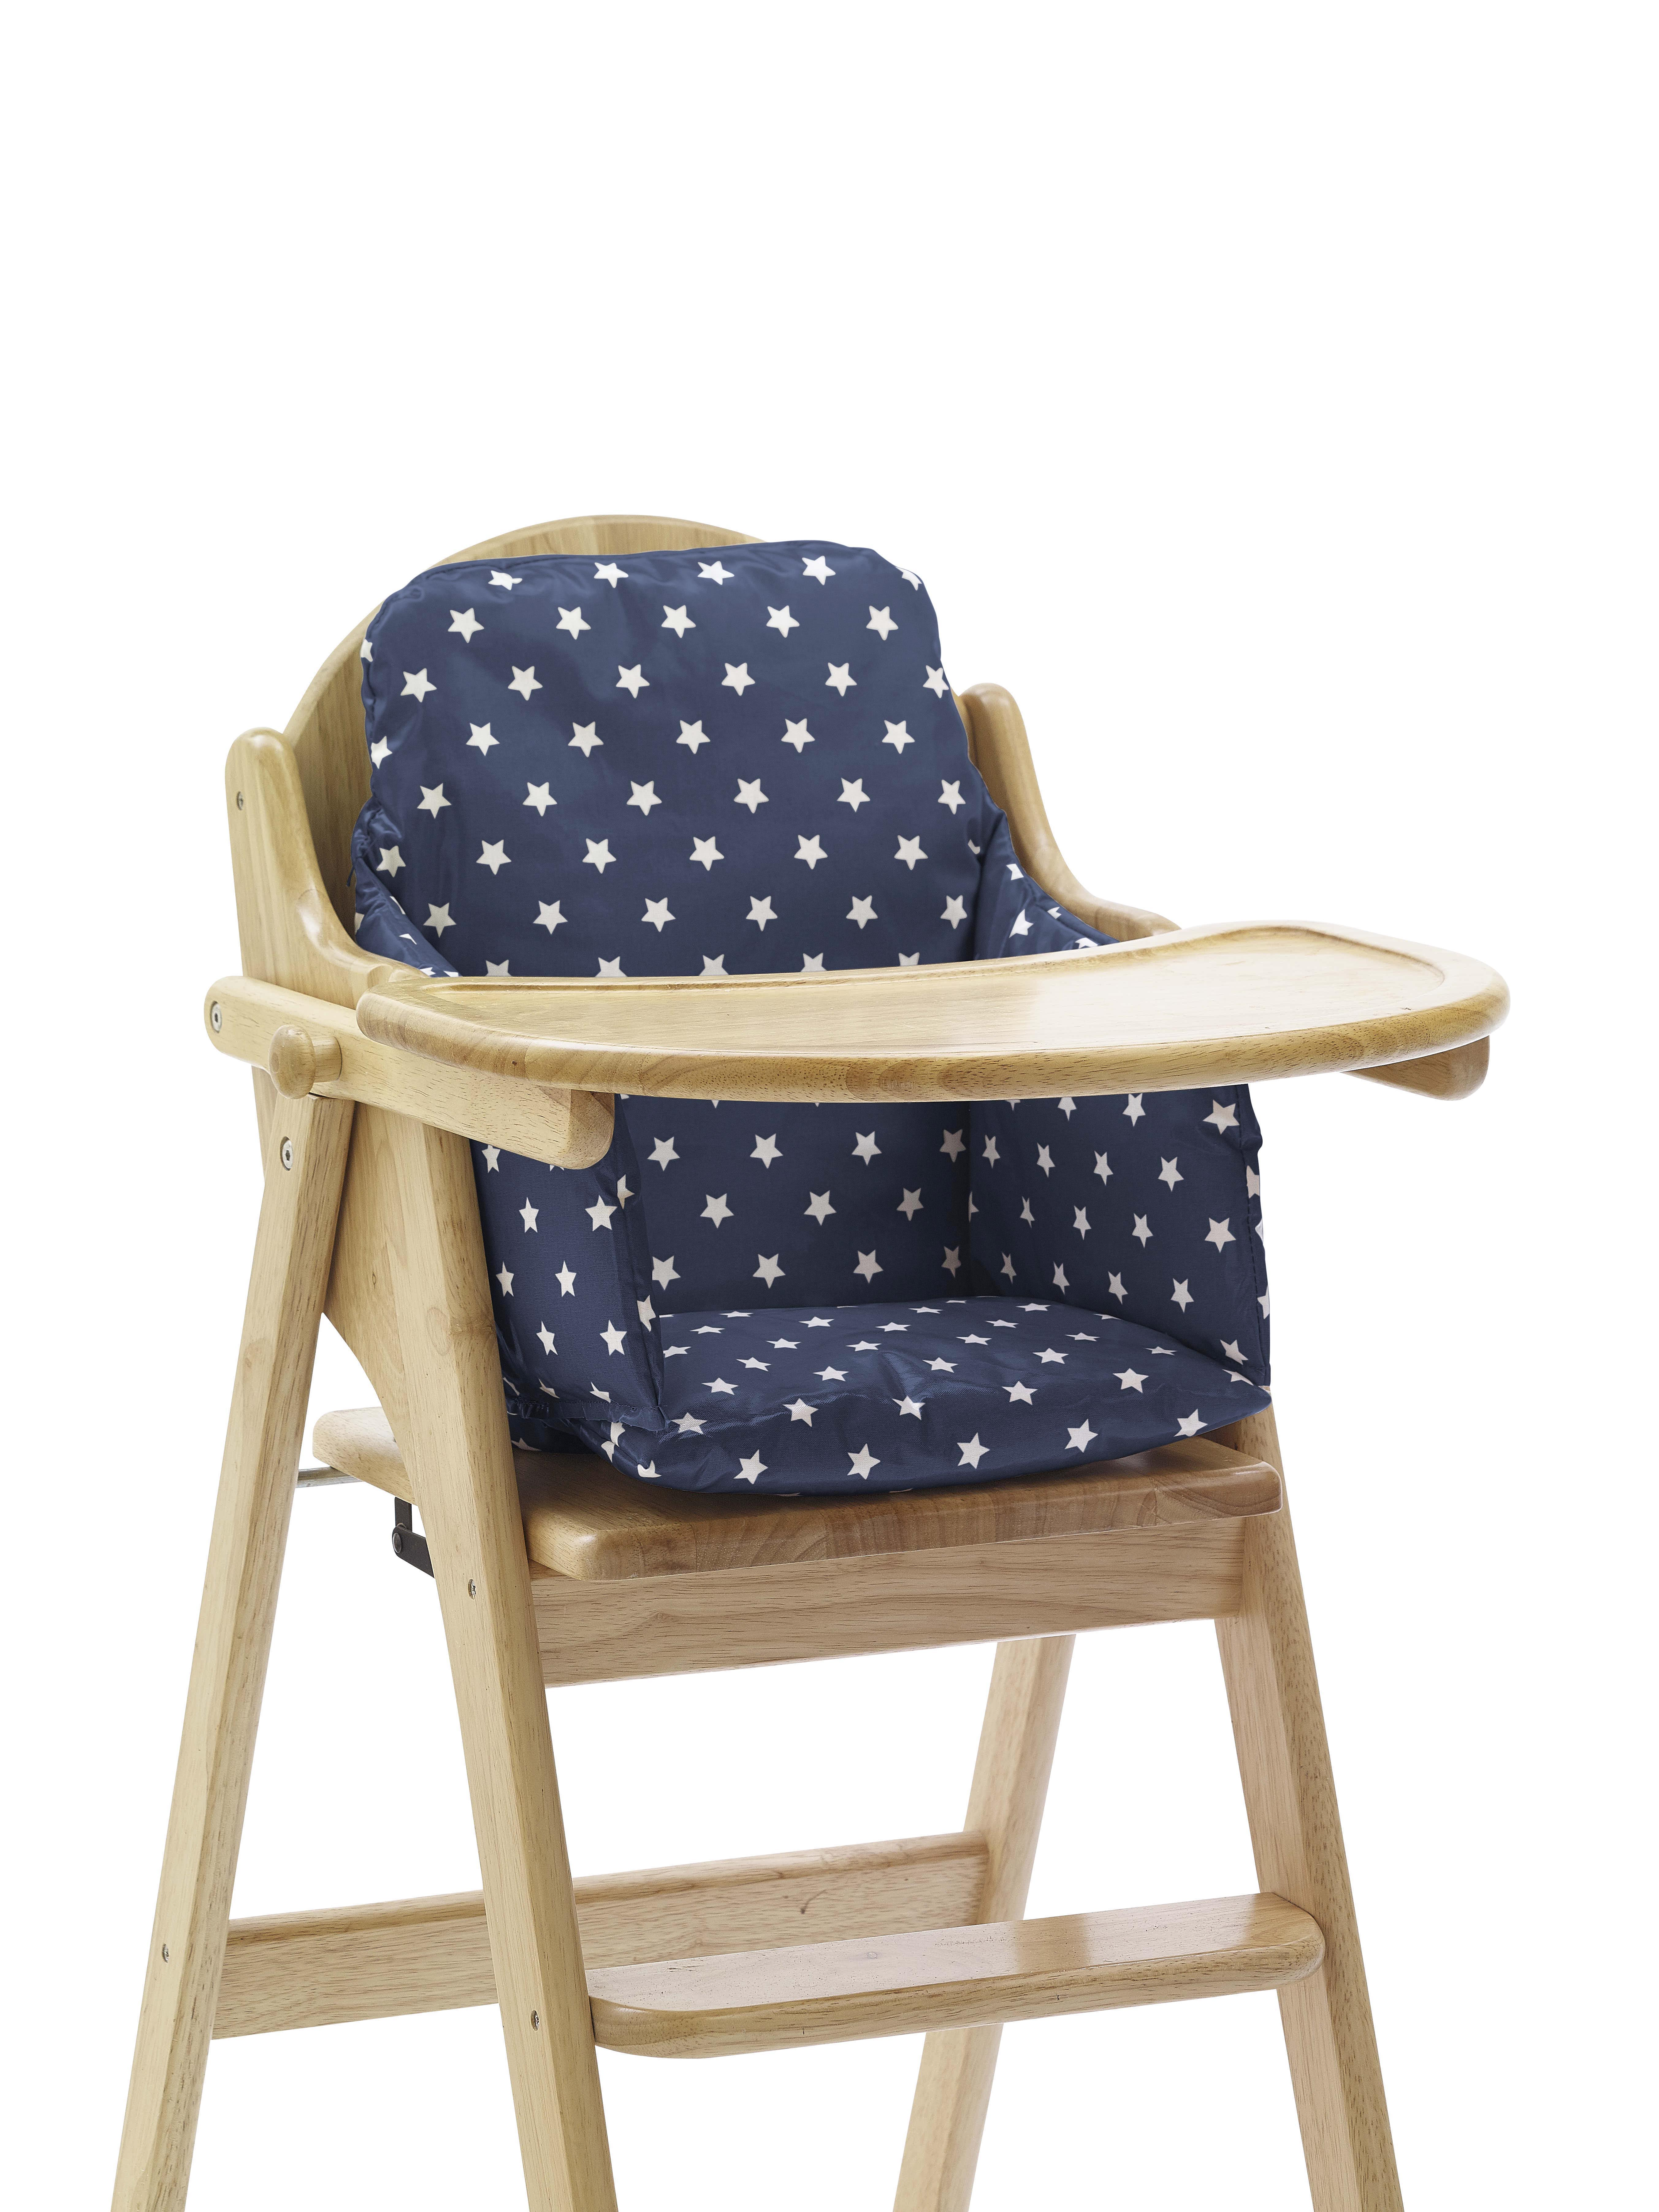 Wipe Clean Cushion Insert For Wooden High Chairs